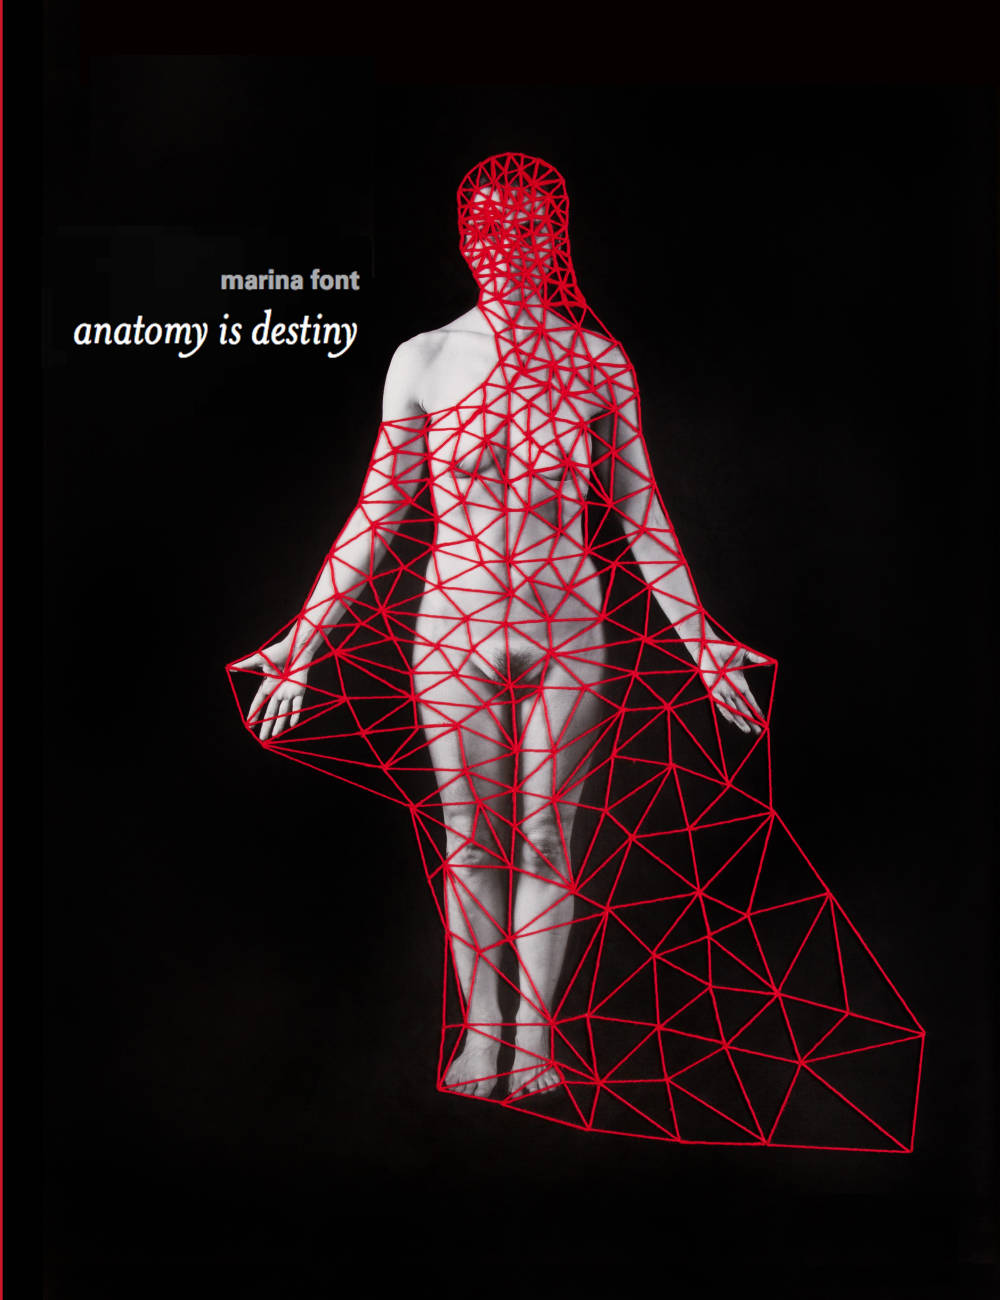 Marina Font's book, 'Anatomy is Destiny' is available for presale through Minor Matters Books (2017).